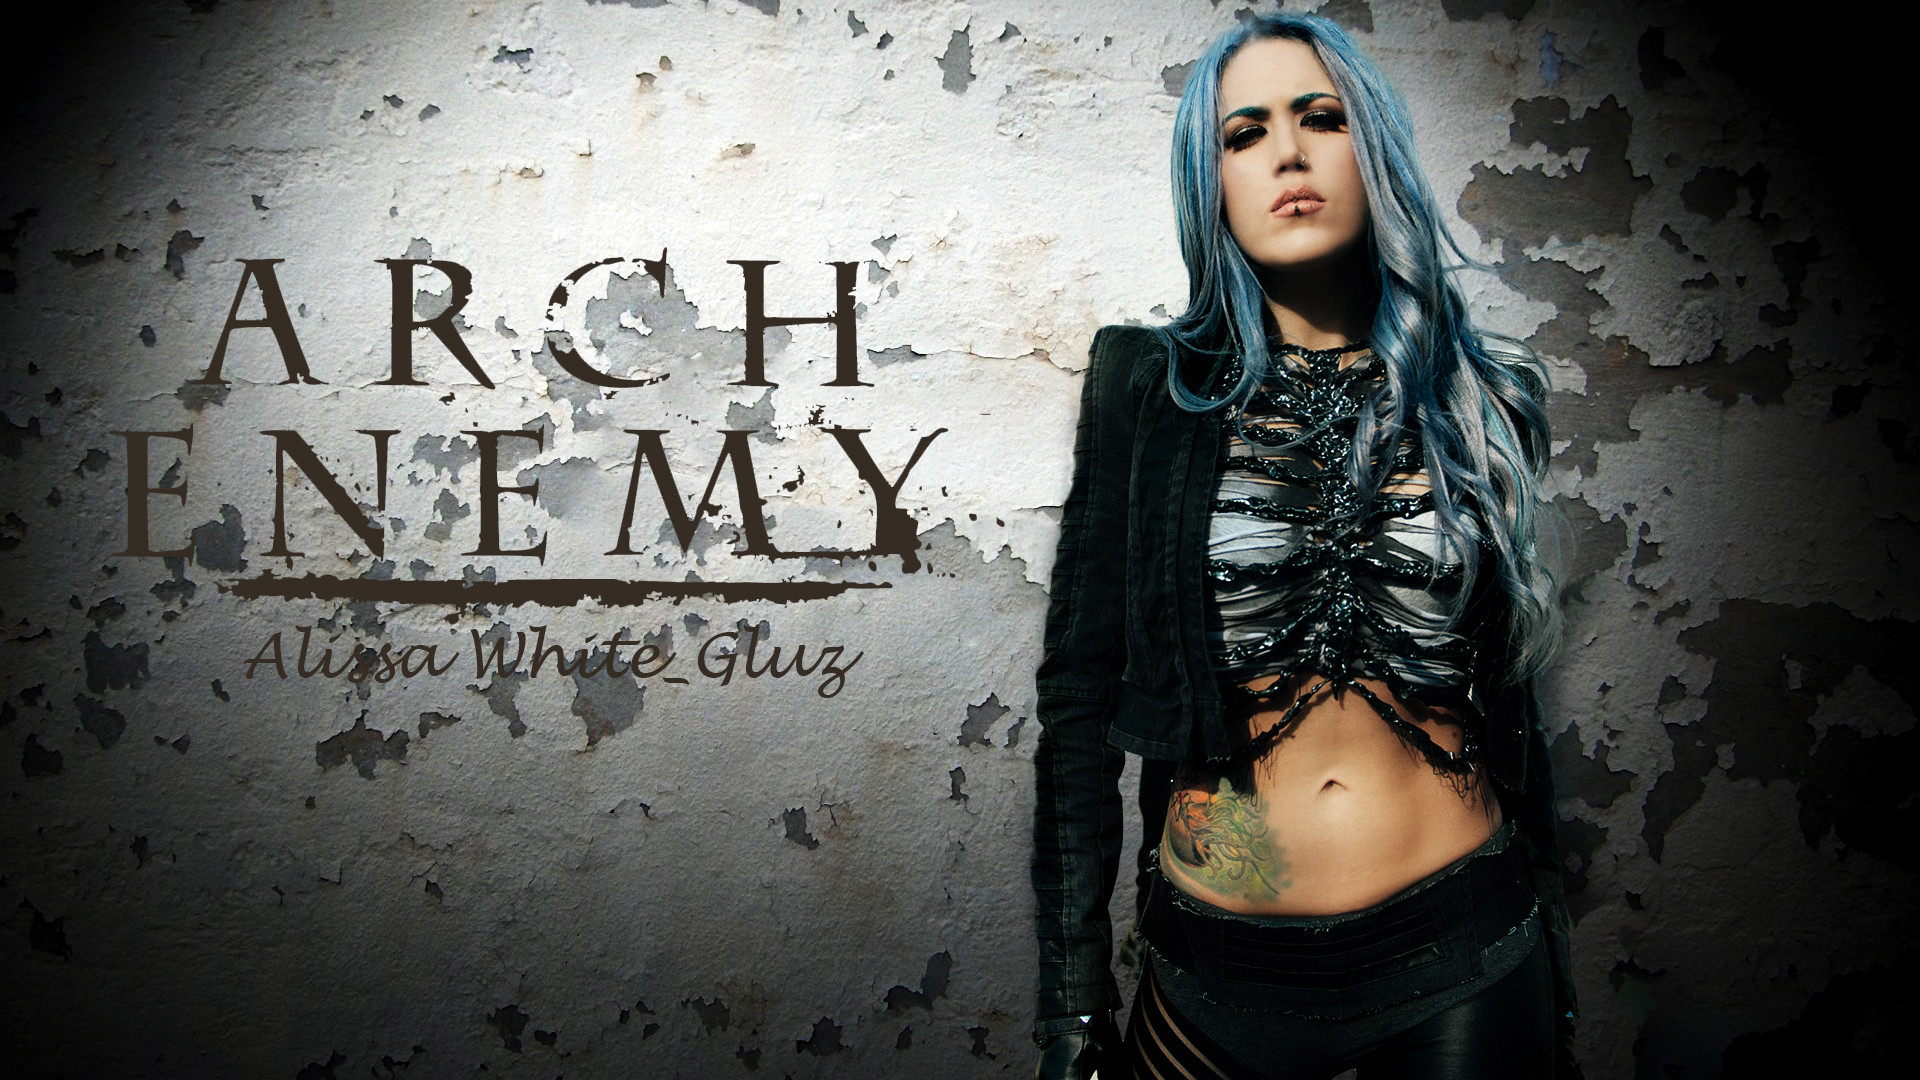 1920x1080 Arch Enemy Alissa 01 by FunkyCop999 Arch Enemy Alissa 01 by FunkyCop999